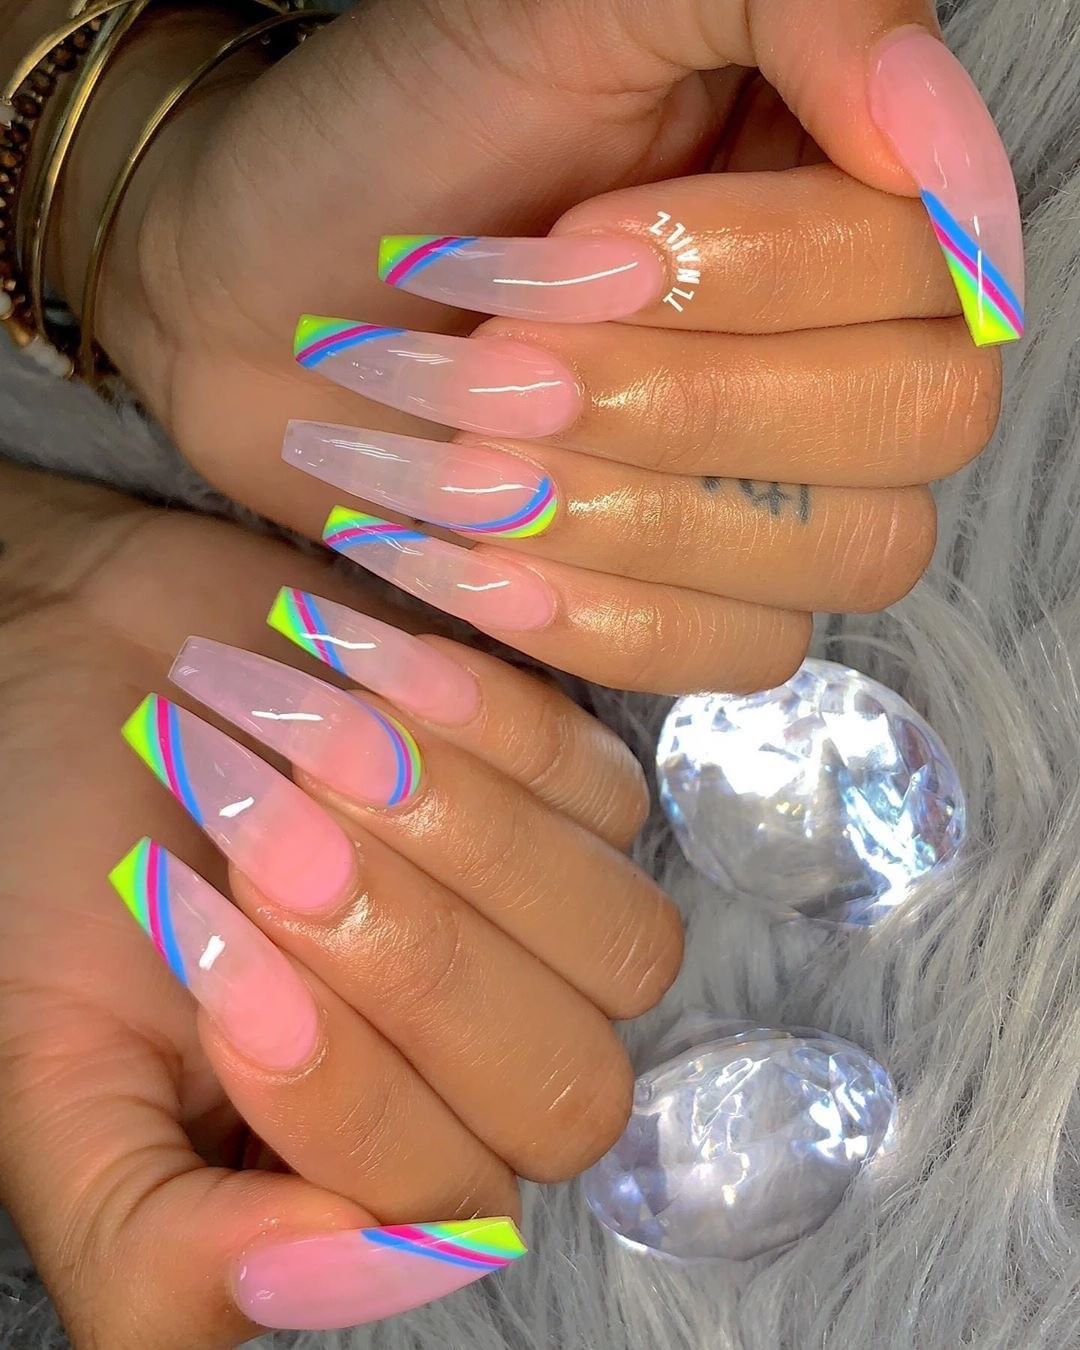 """NAILPRO Magazine on Instagram: """"Leave it to @tlnailz to whip up a #UNIQUE summer nail look 🎾🦋🎾 . . . . . #nails #sculptednails #luxurylife #nailart #nailartist…"""""""